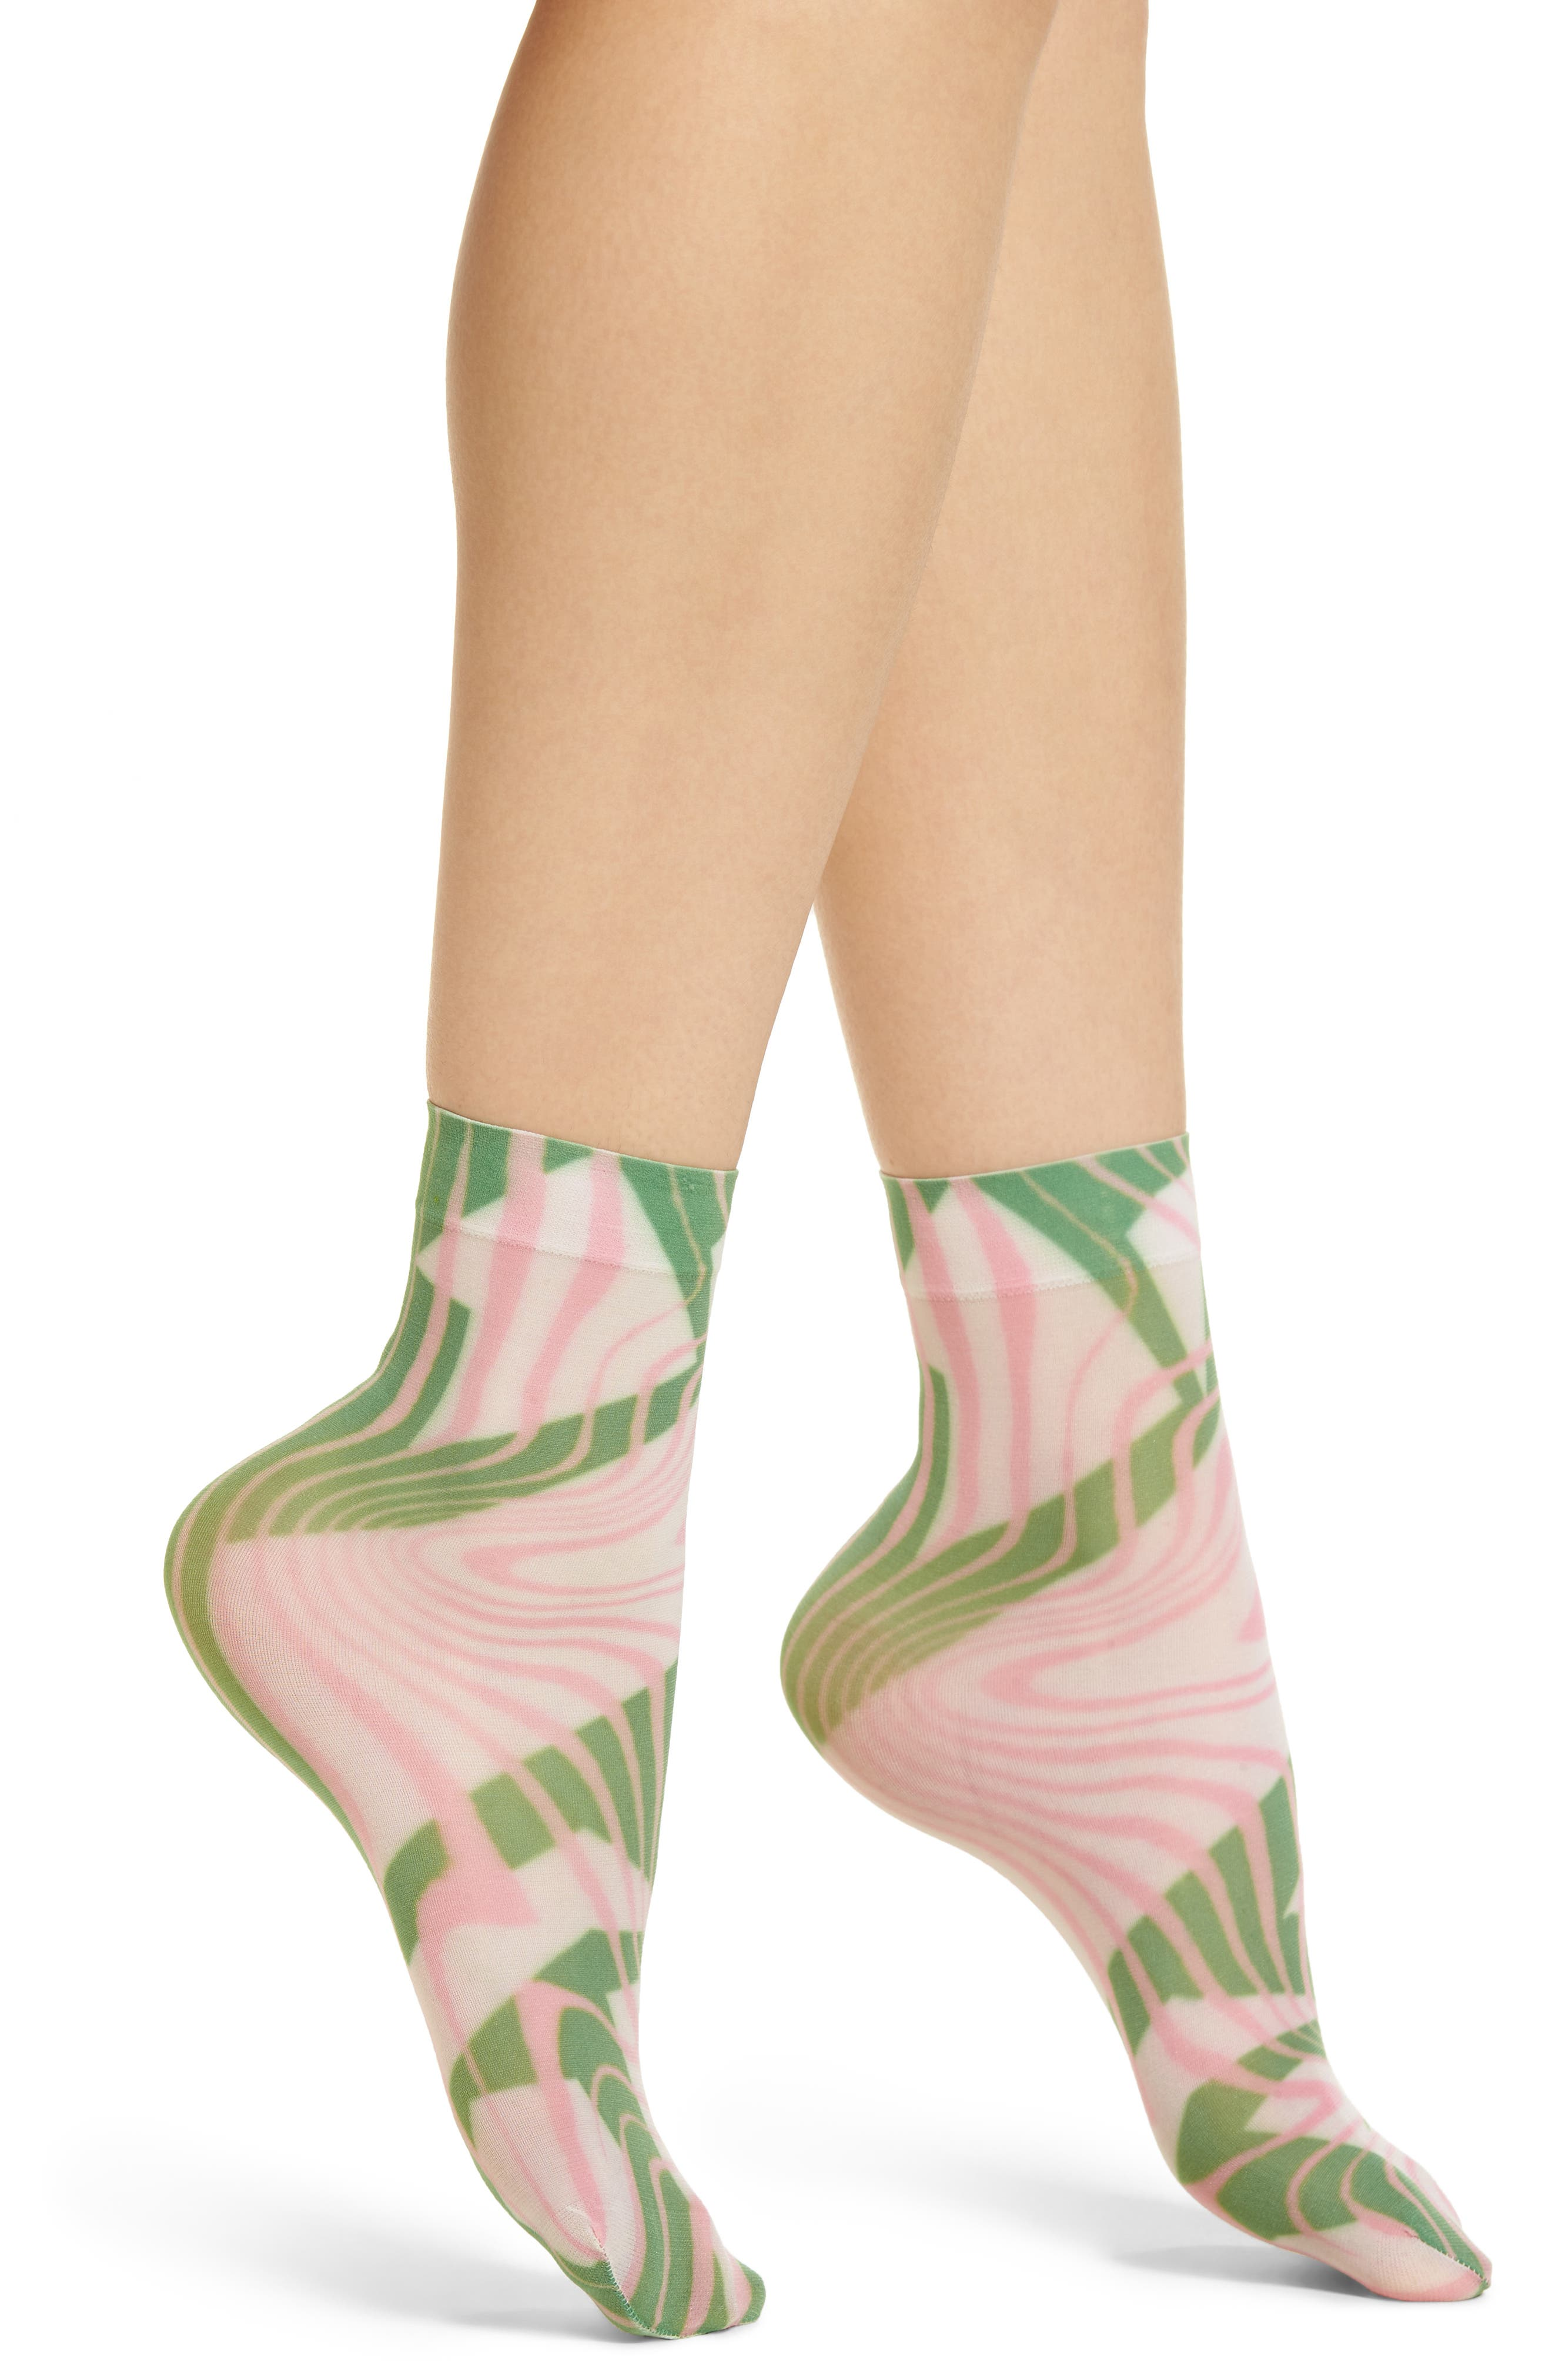 Mia Ankle Socks,                             Main thumbnail 1, color,                             Pink